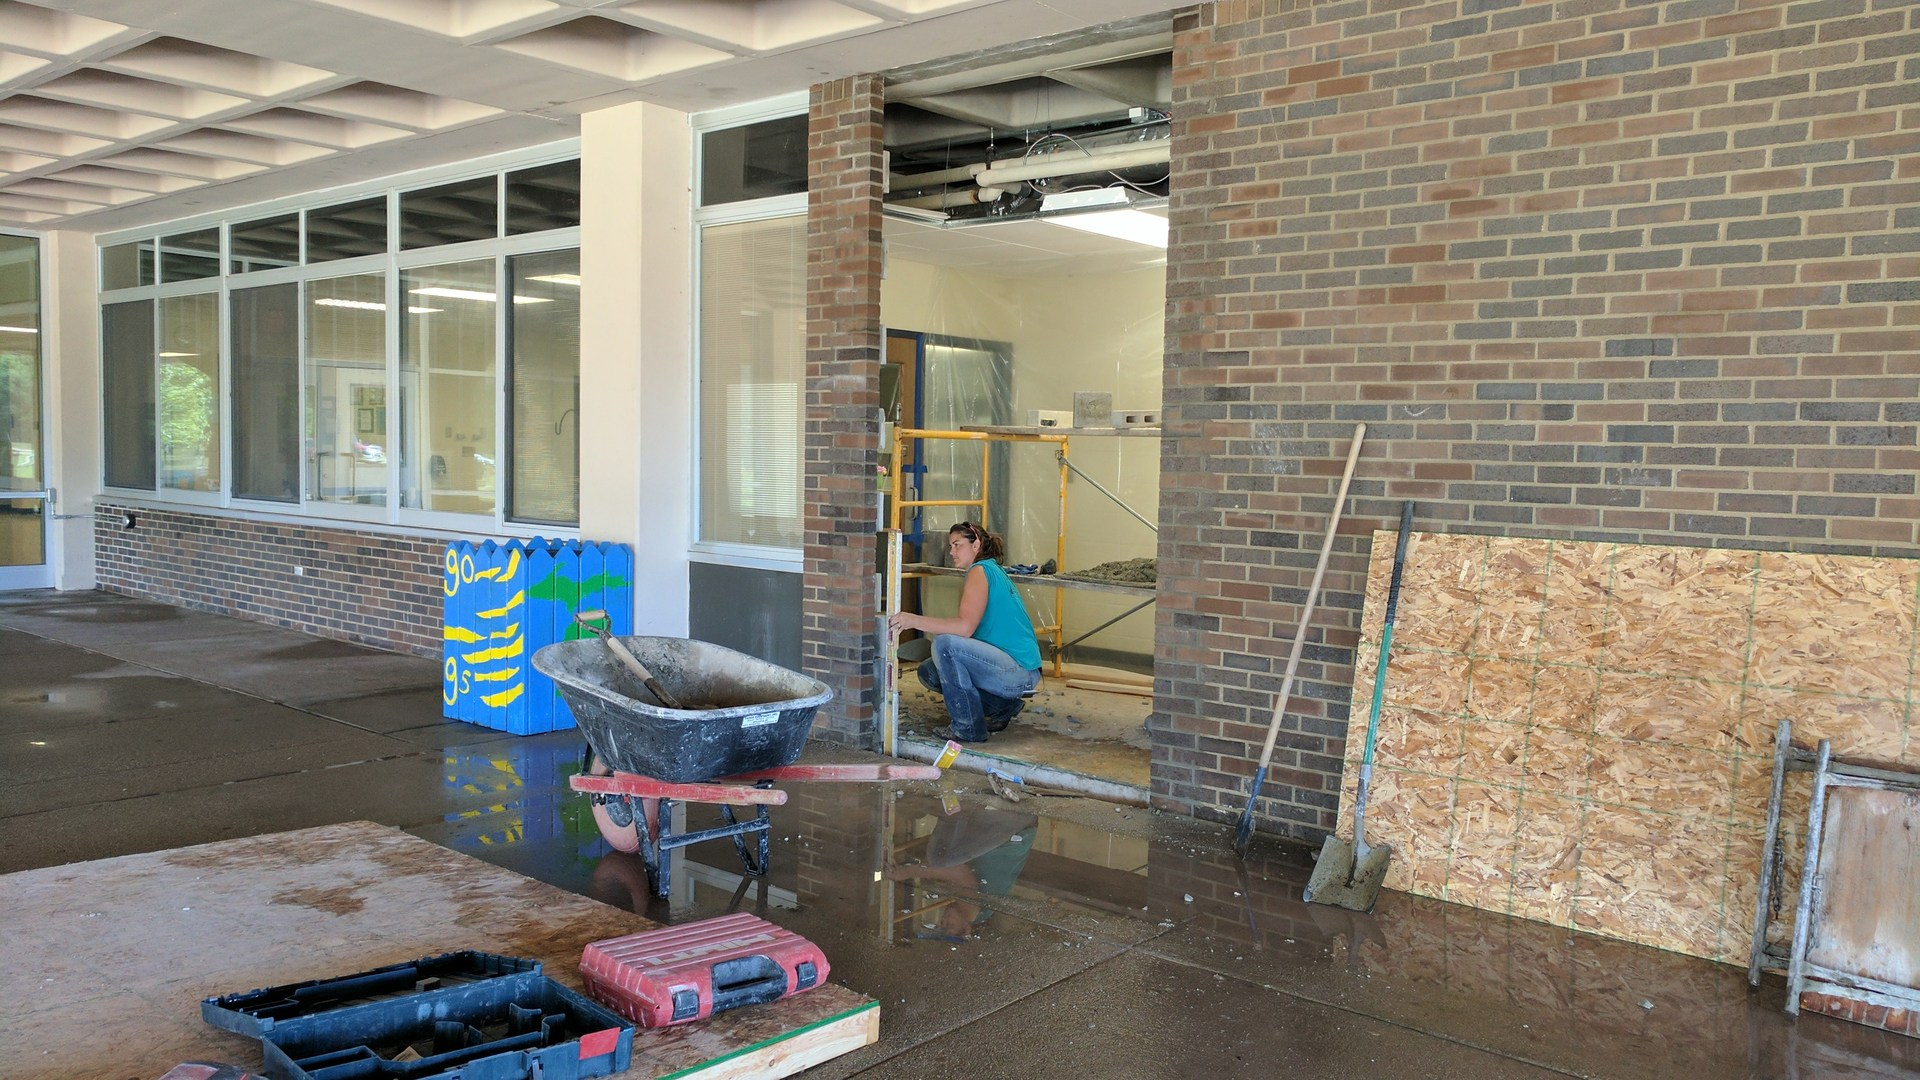 Workers create a new door for visitors to enter at Washington Street Elementary.